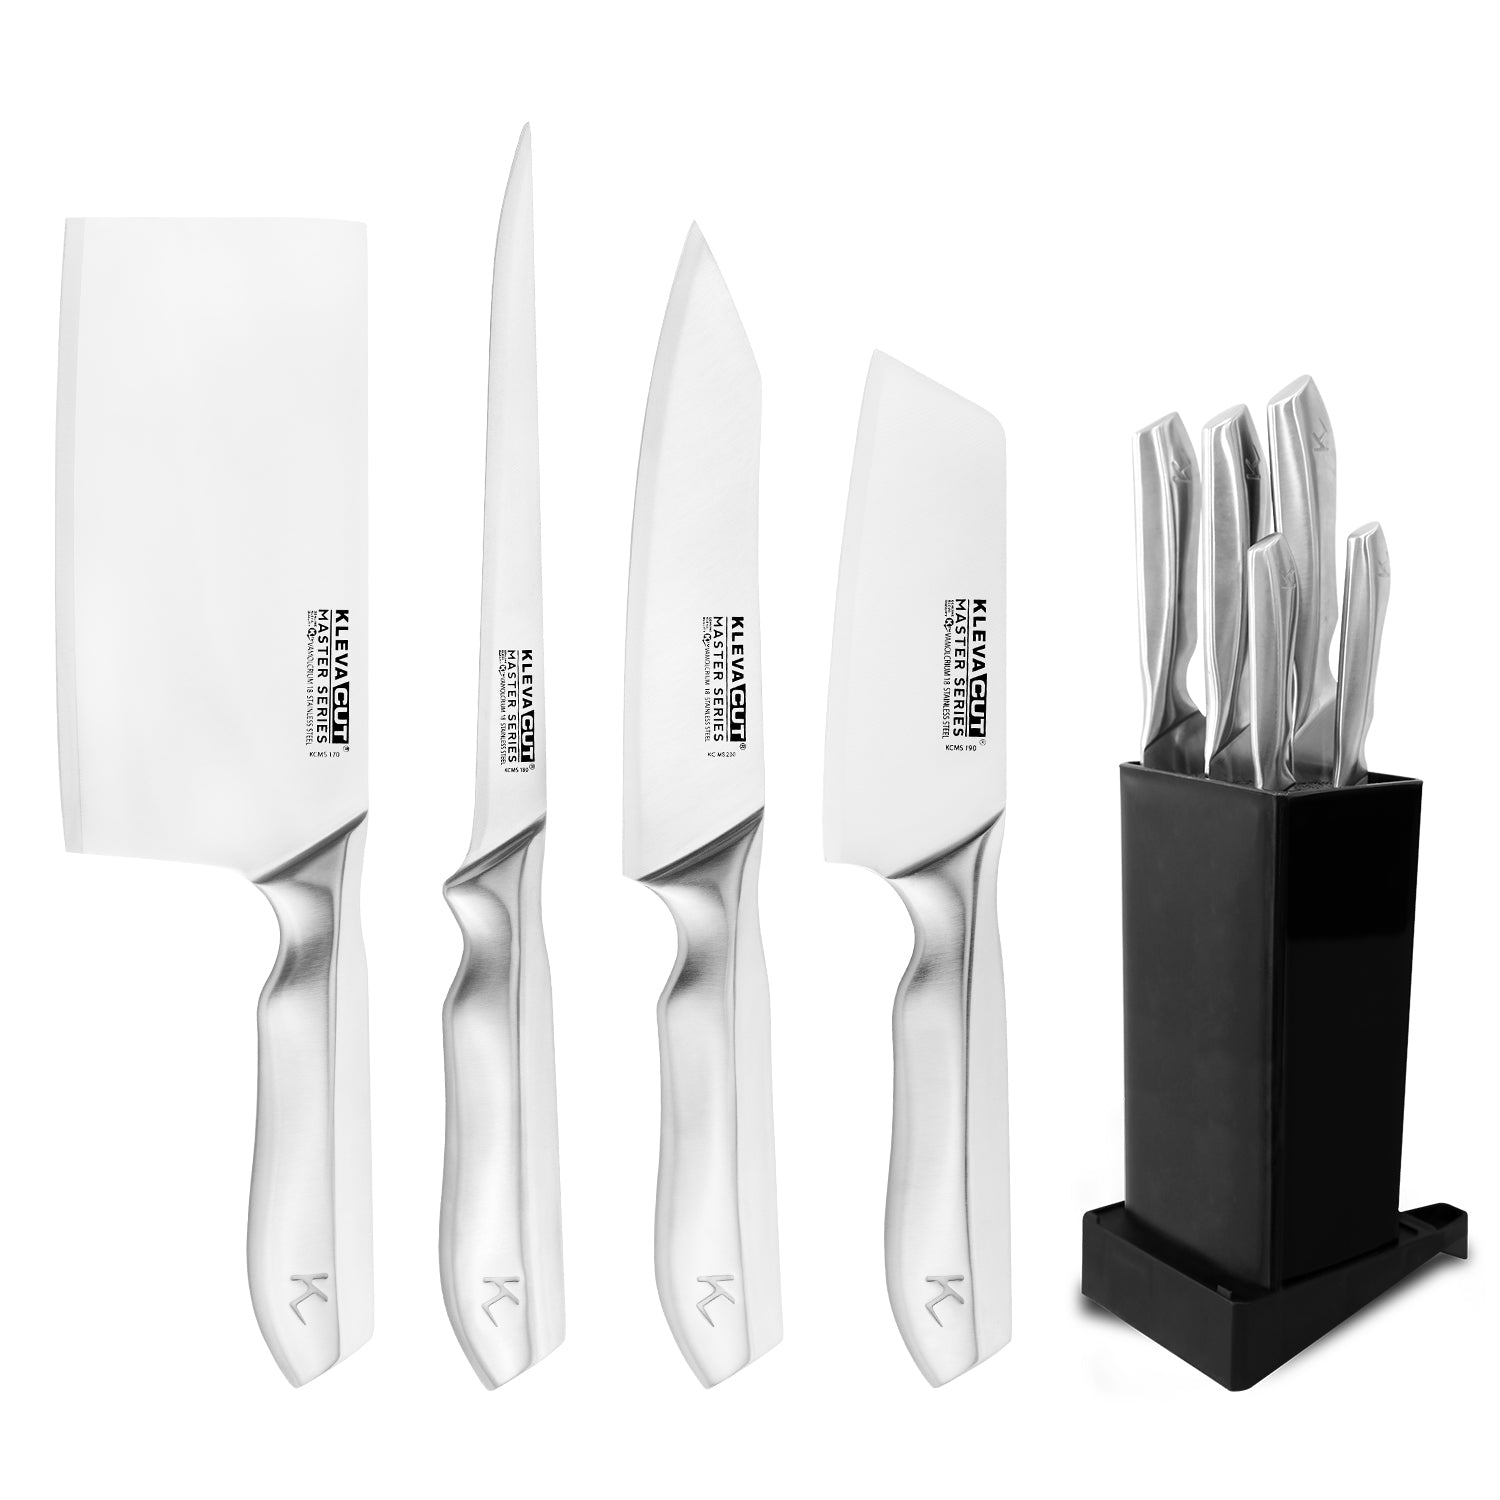 Speciality 4 Piece KlevaCut® Master Series Knife Set + Universal Knife Block